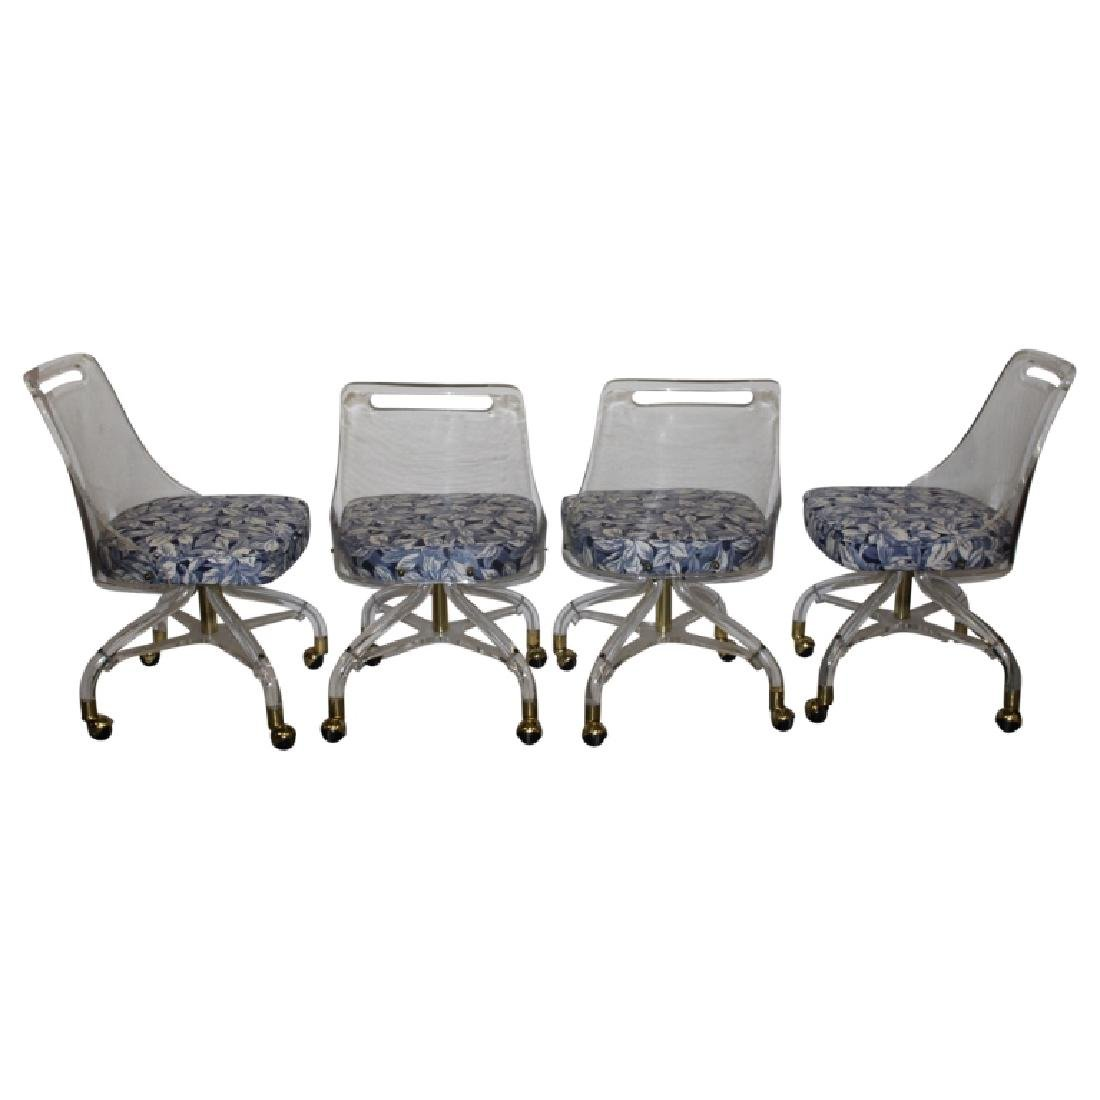 Set of 4 Hill Manufacturing Co. Lucite Chairs - 4